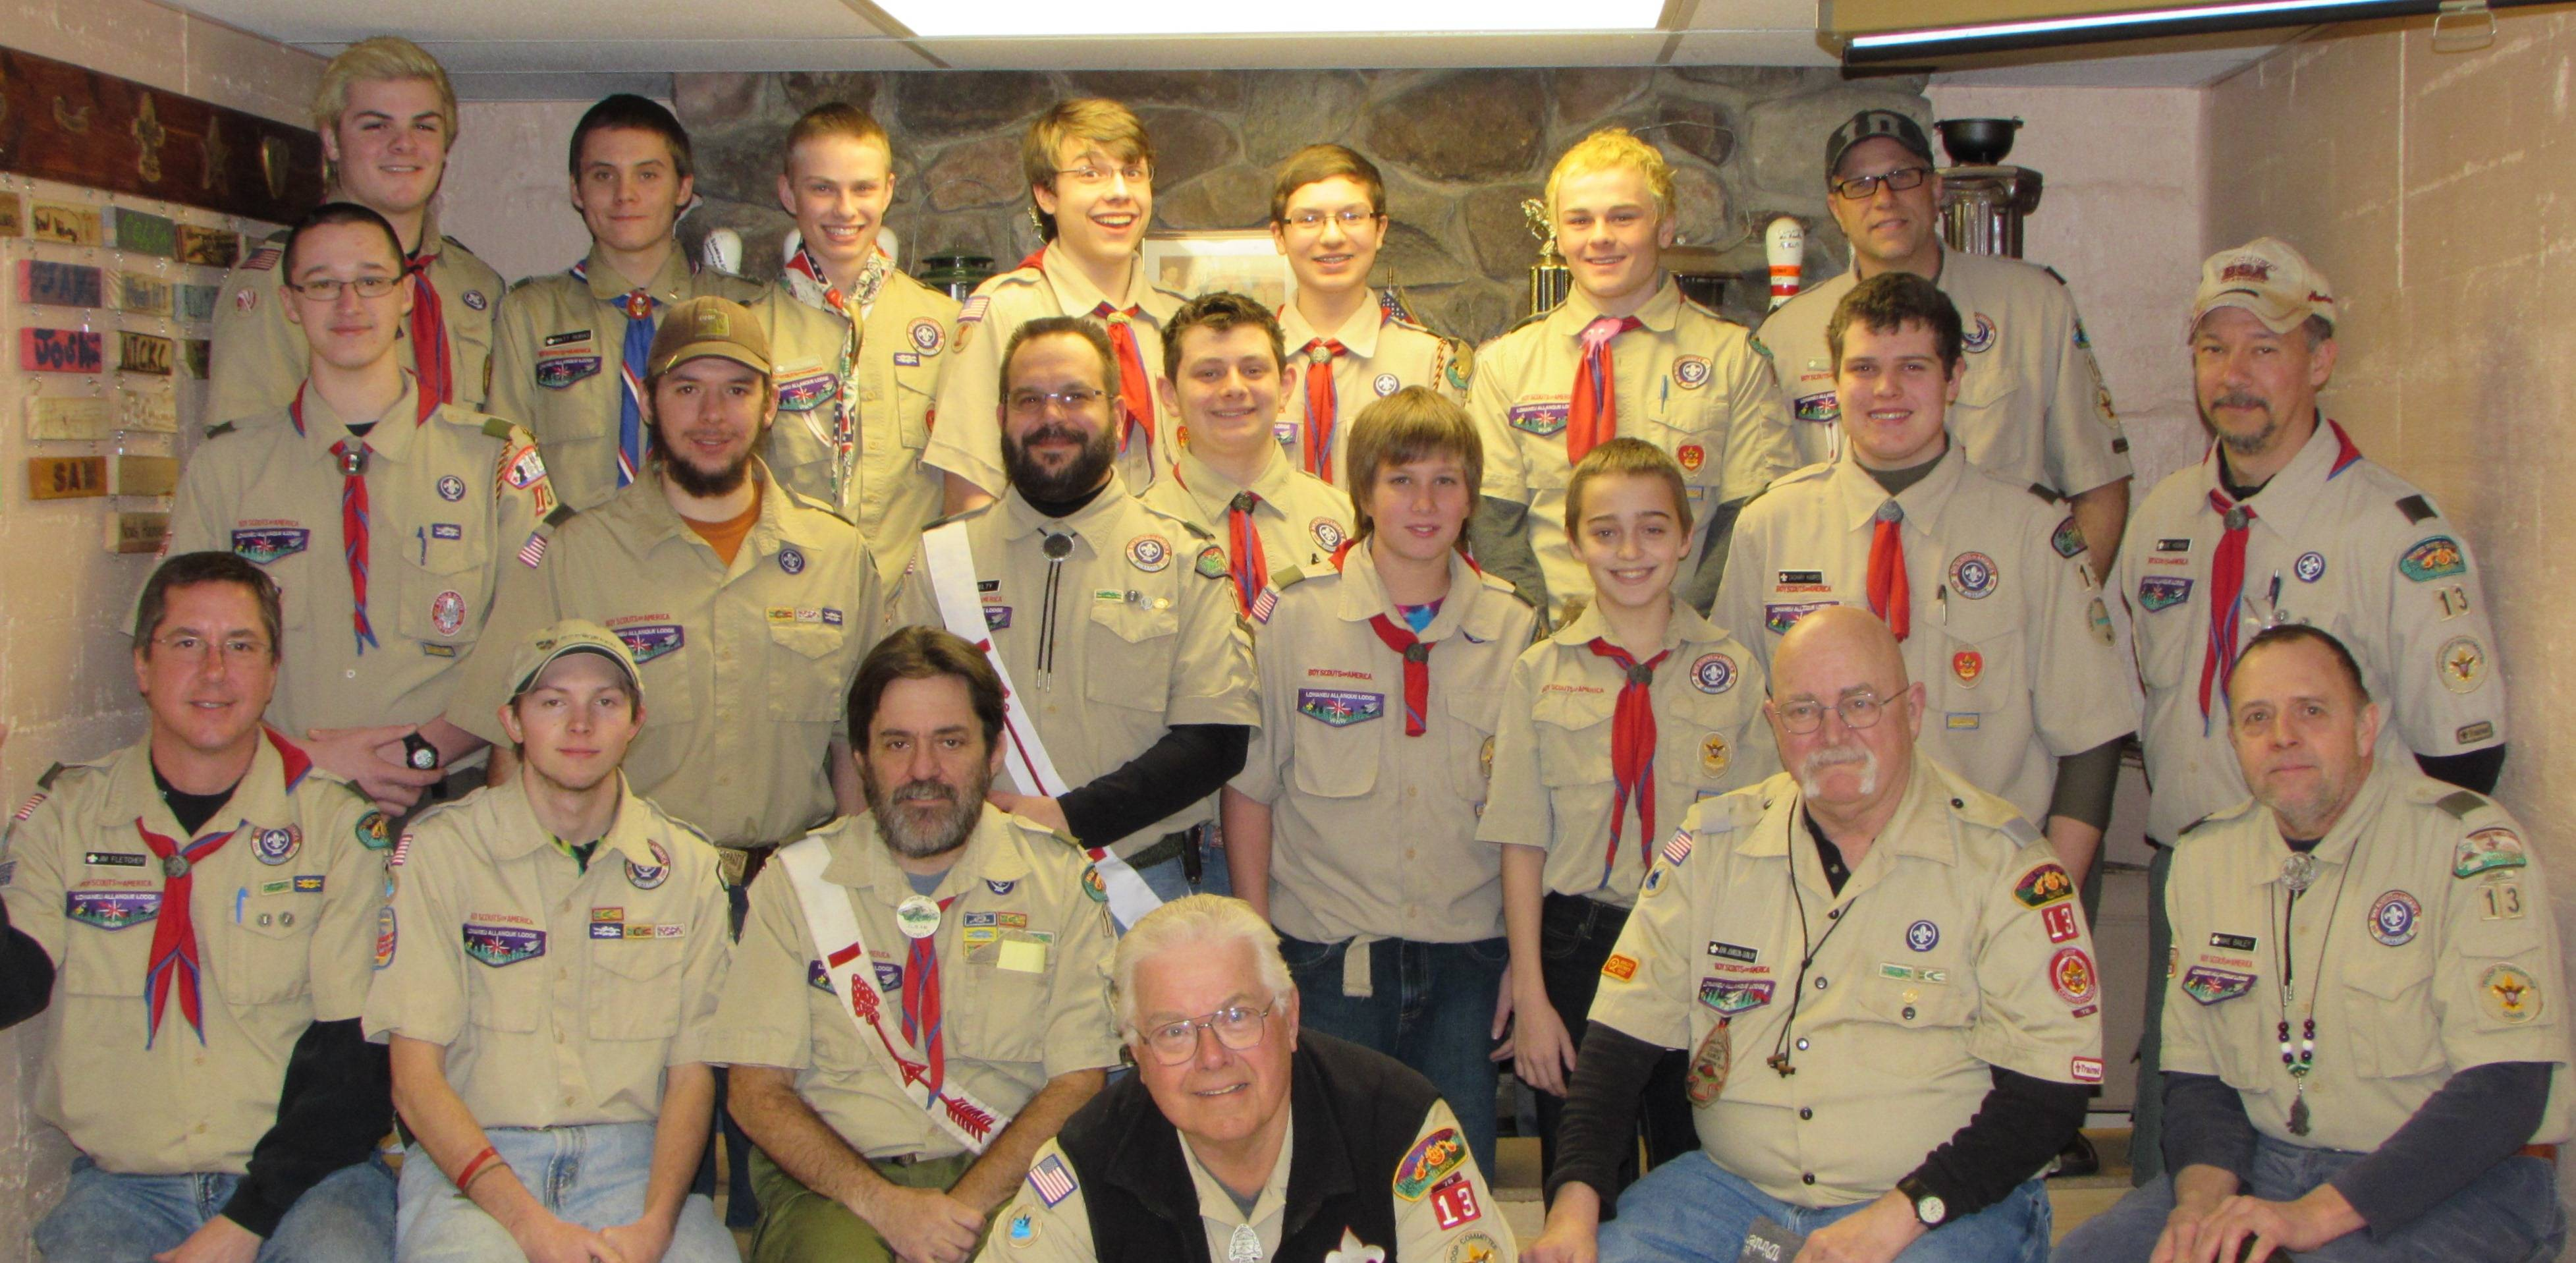 Boy Scout Troop 13 with Bethlehem Lutheran Church in St. Charles has many Scouts who are Order of Arrow members.